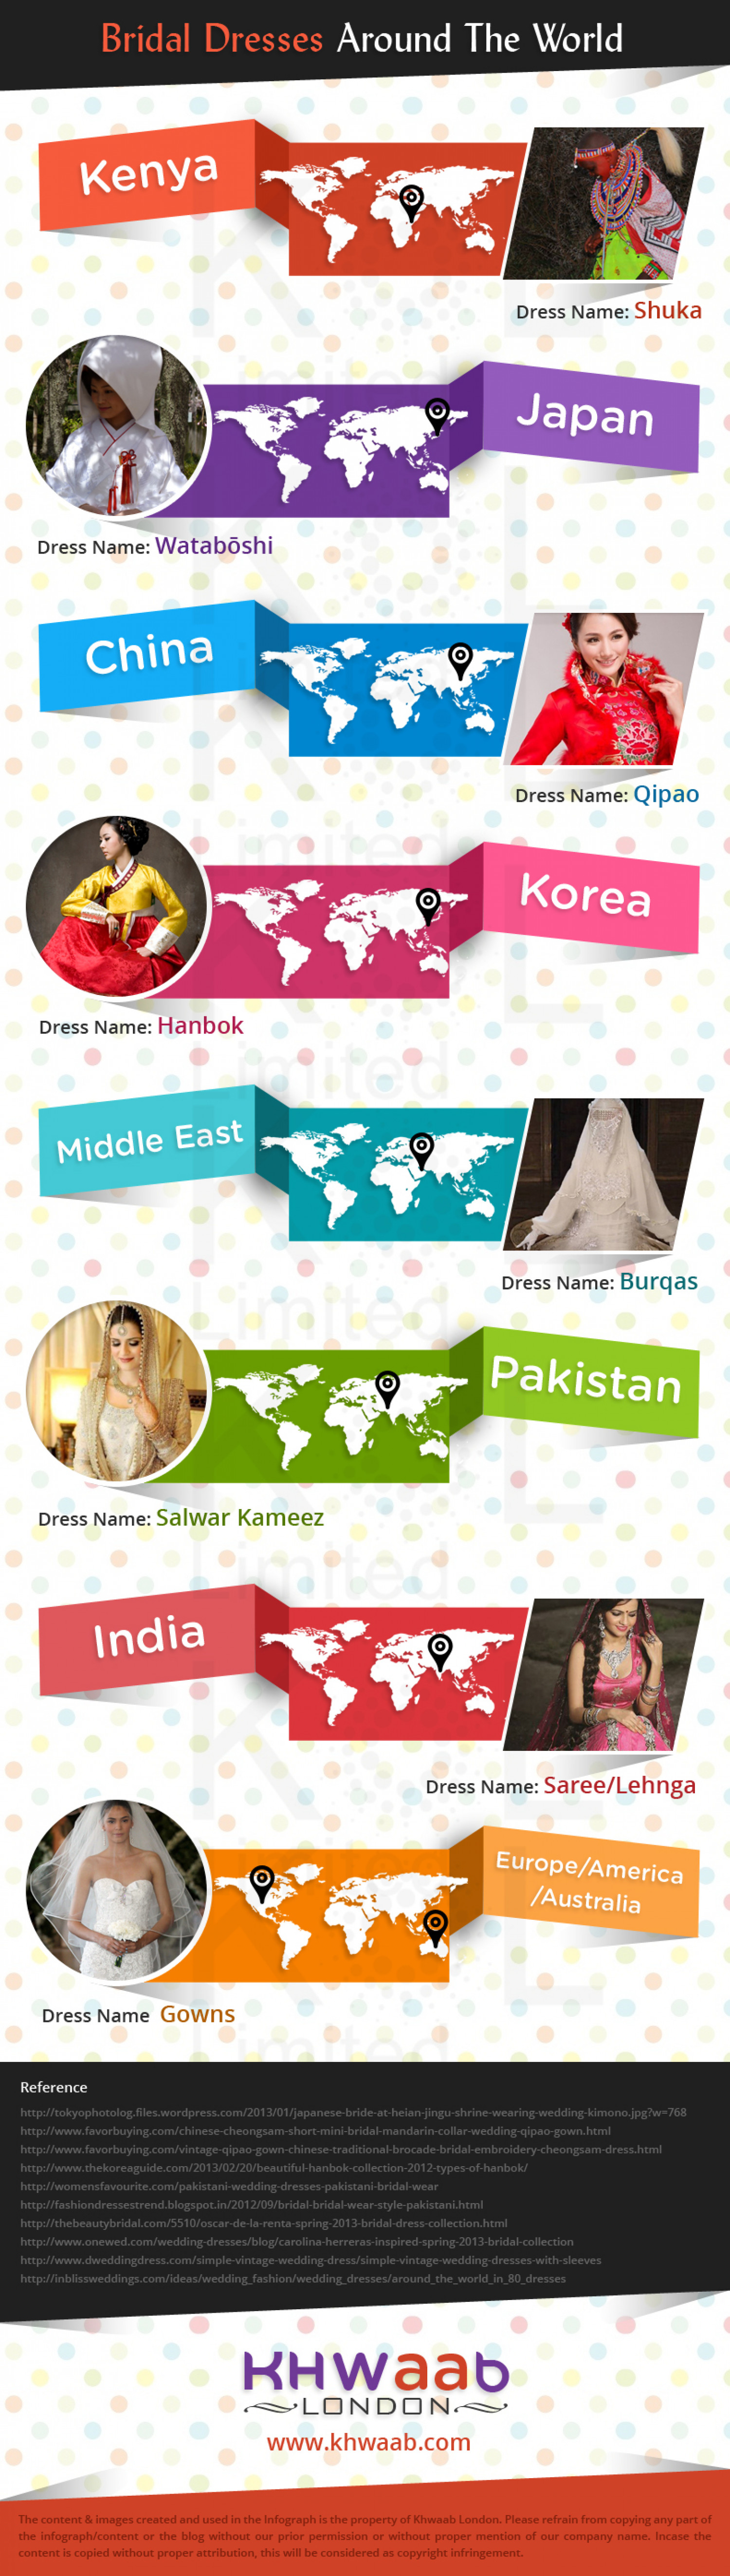 Bridal Dresses Around The World Infographic